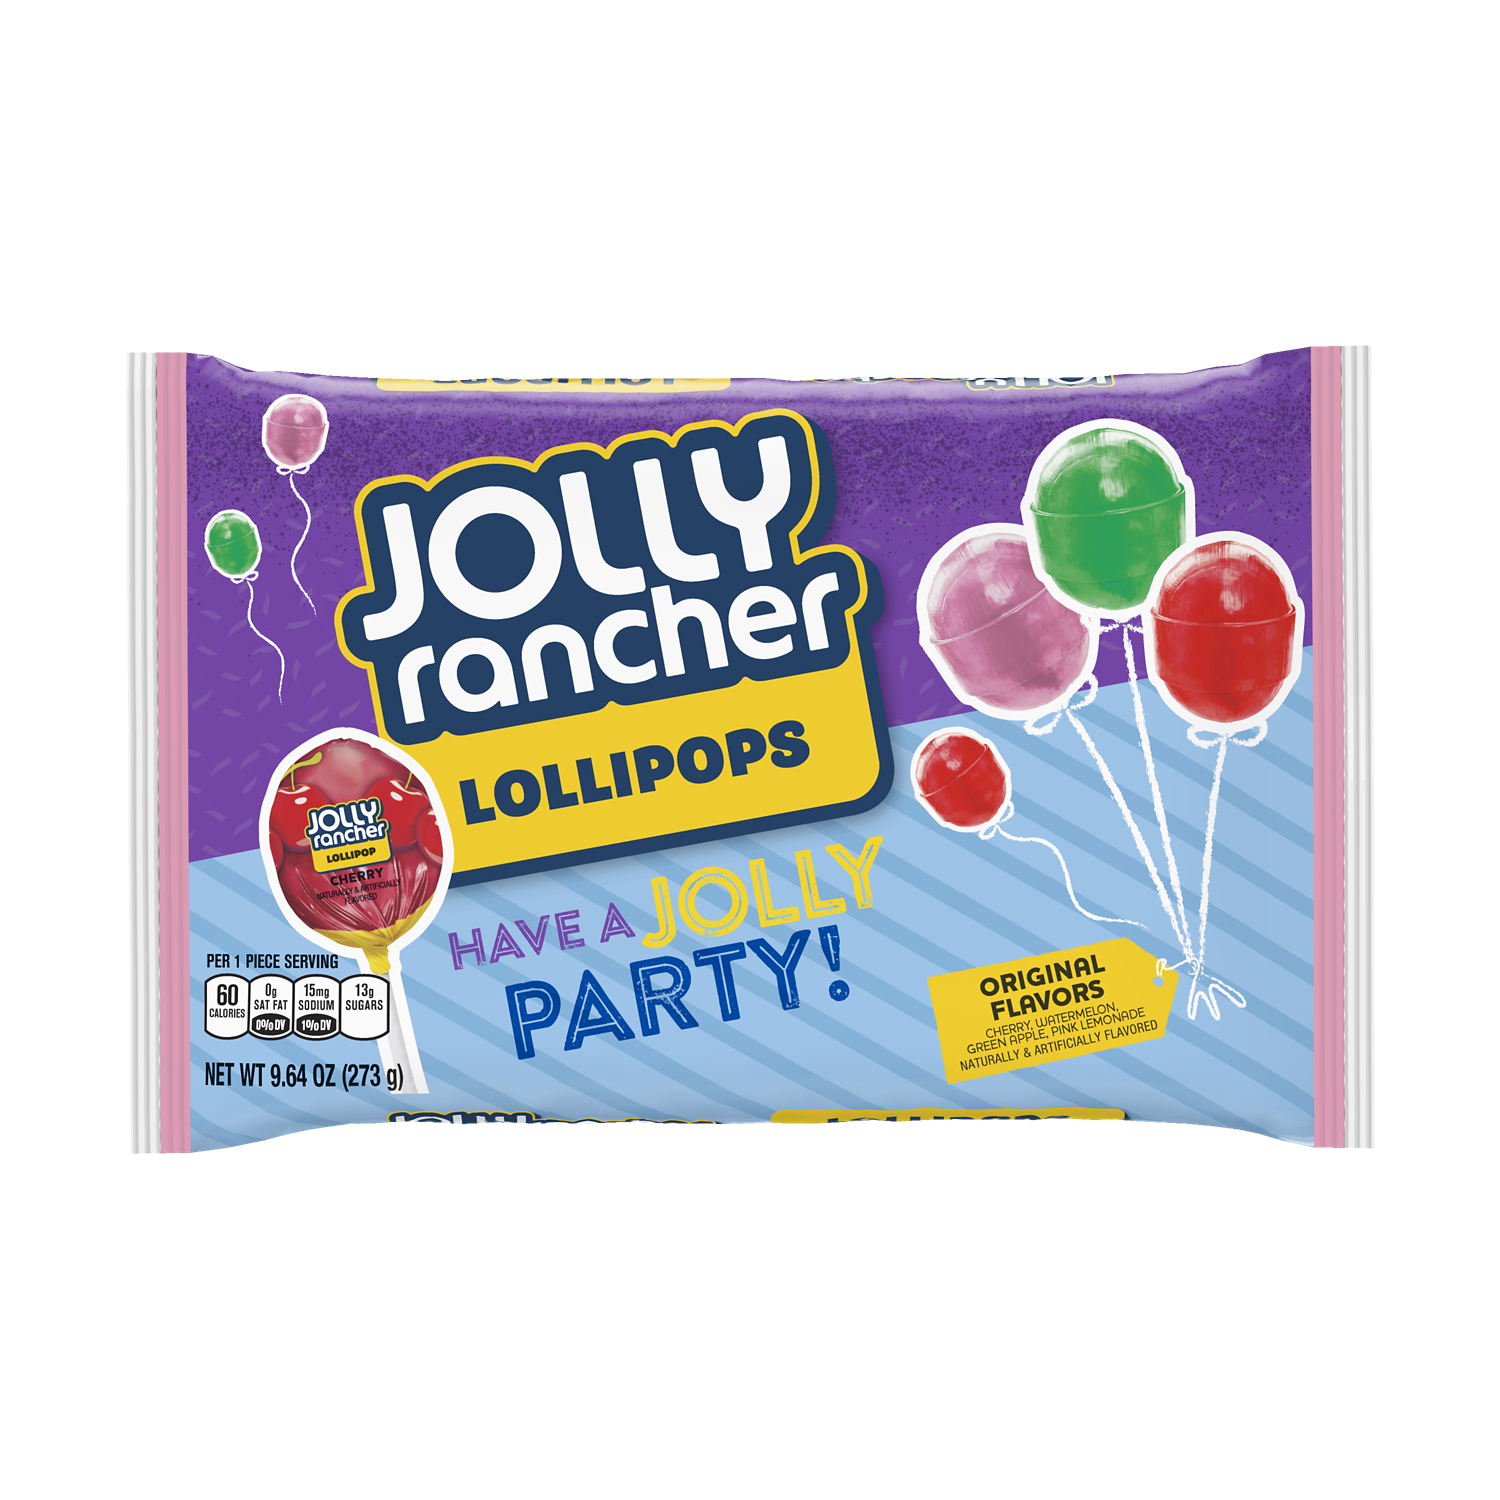 JOLLY RANCHER Original Flavors Lollipops, 9.64 oz bag - Front of Package